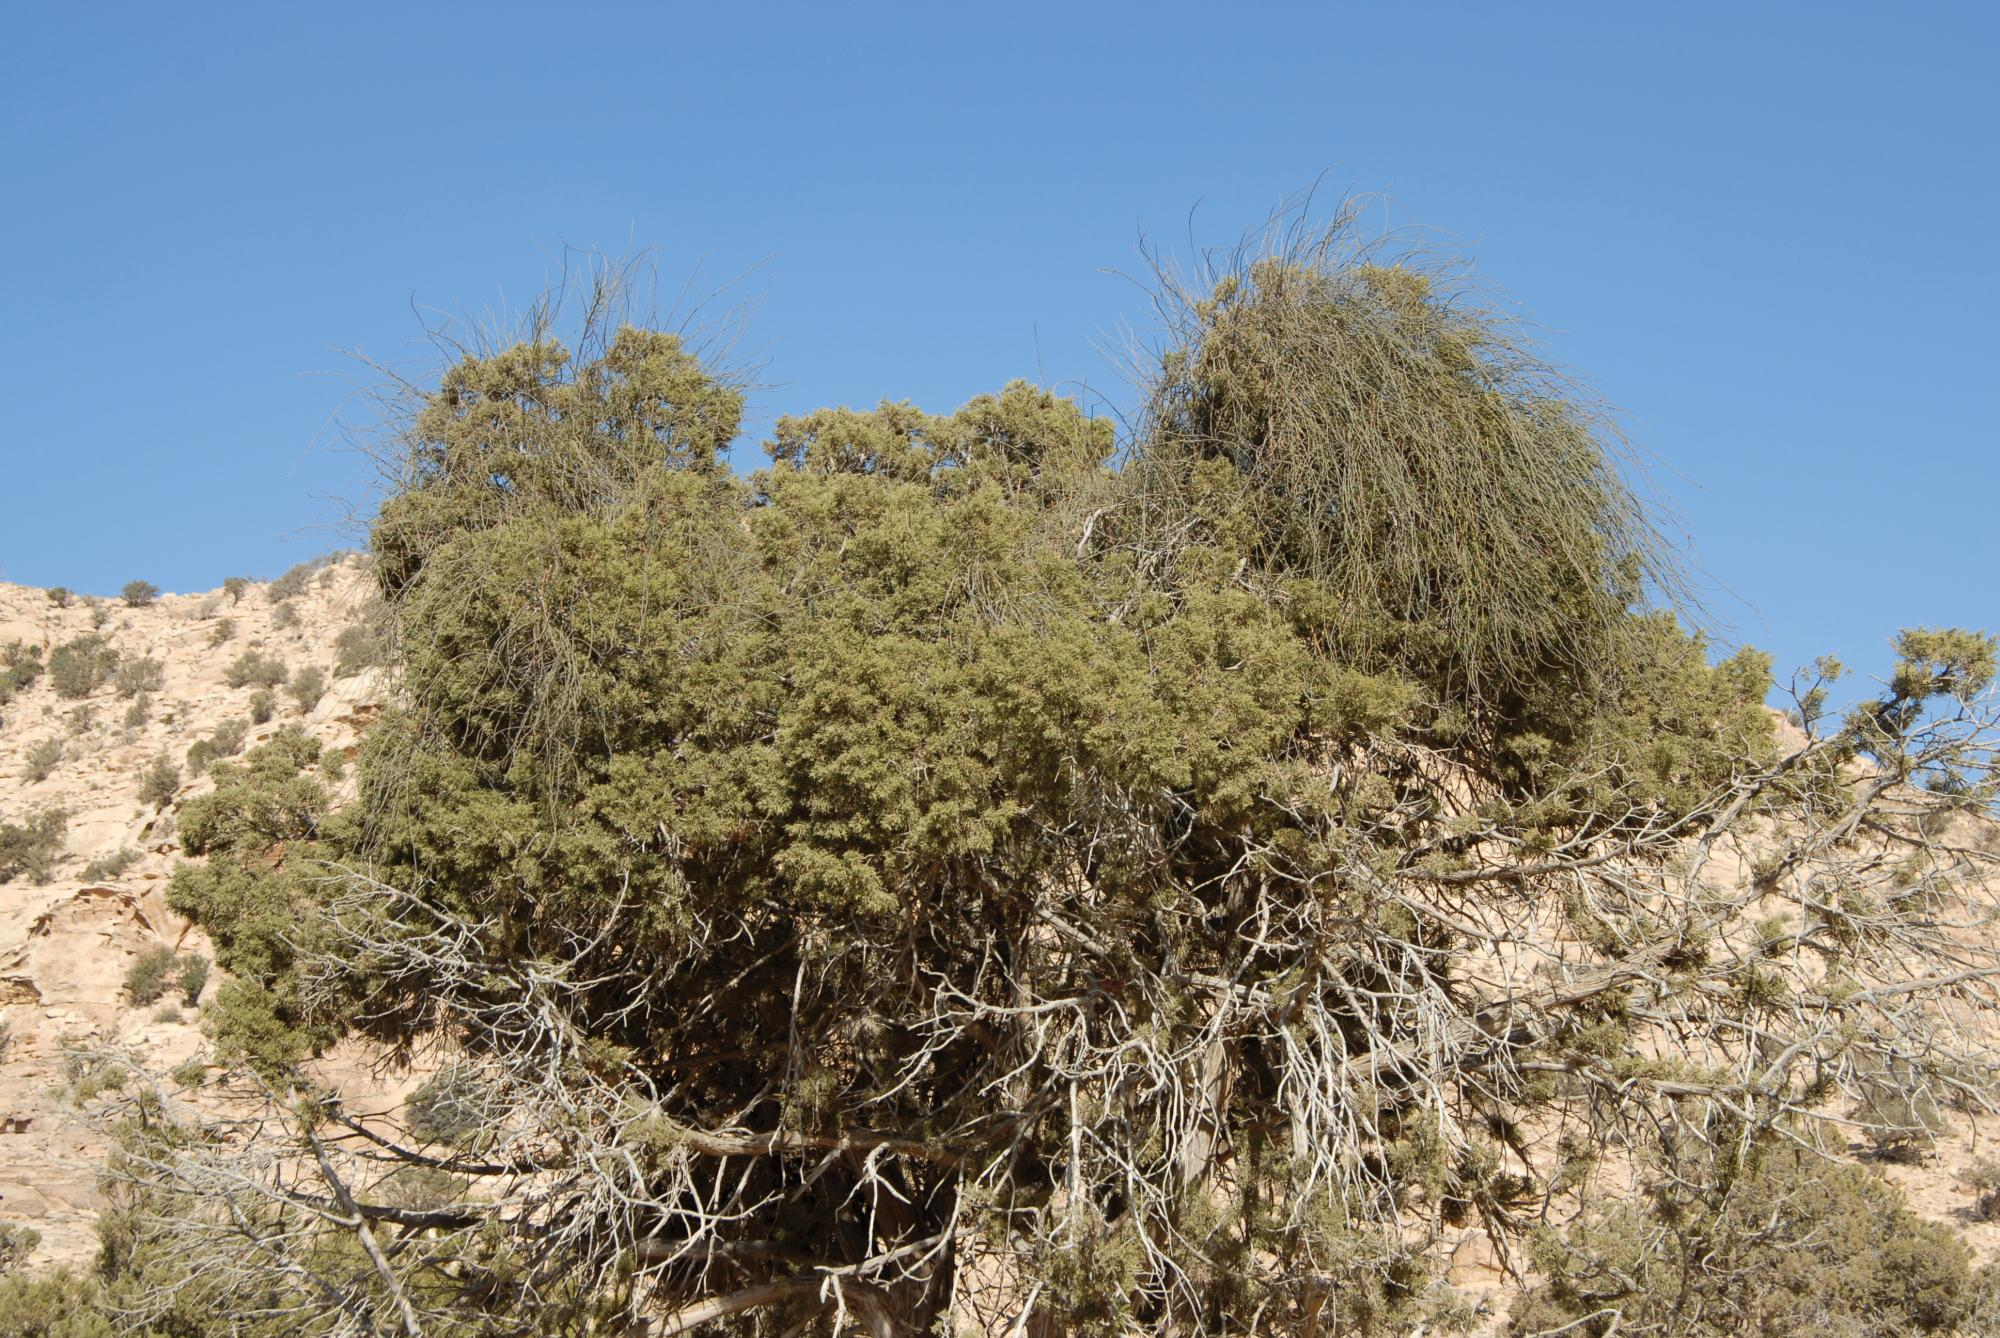 Shamanic/Spirit Desert Plants